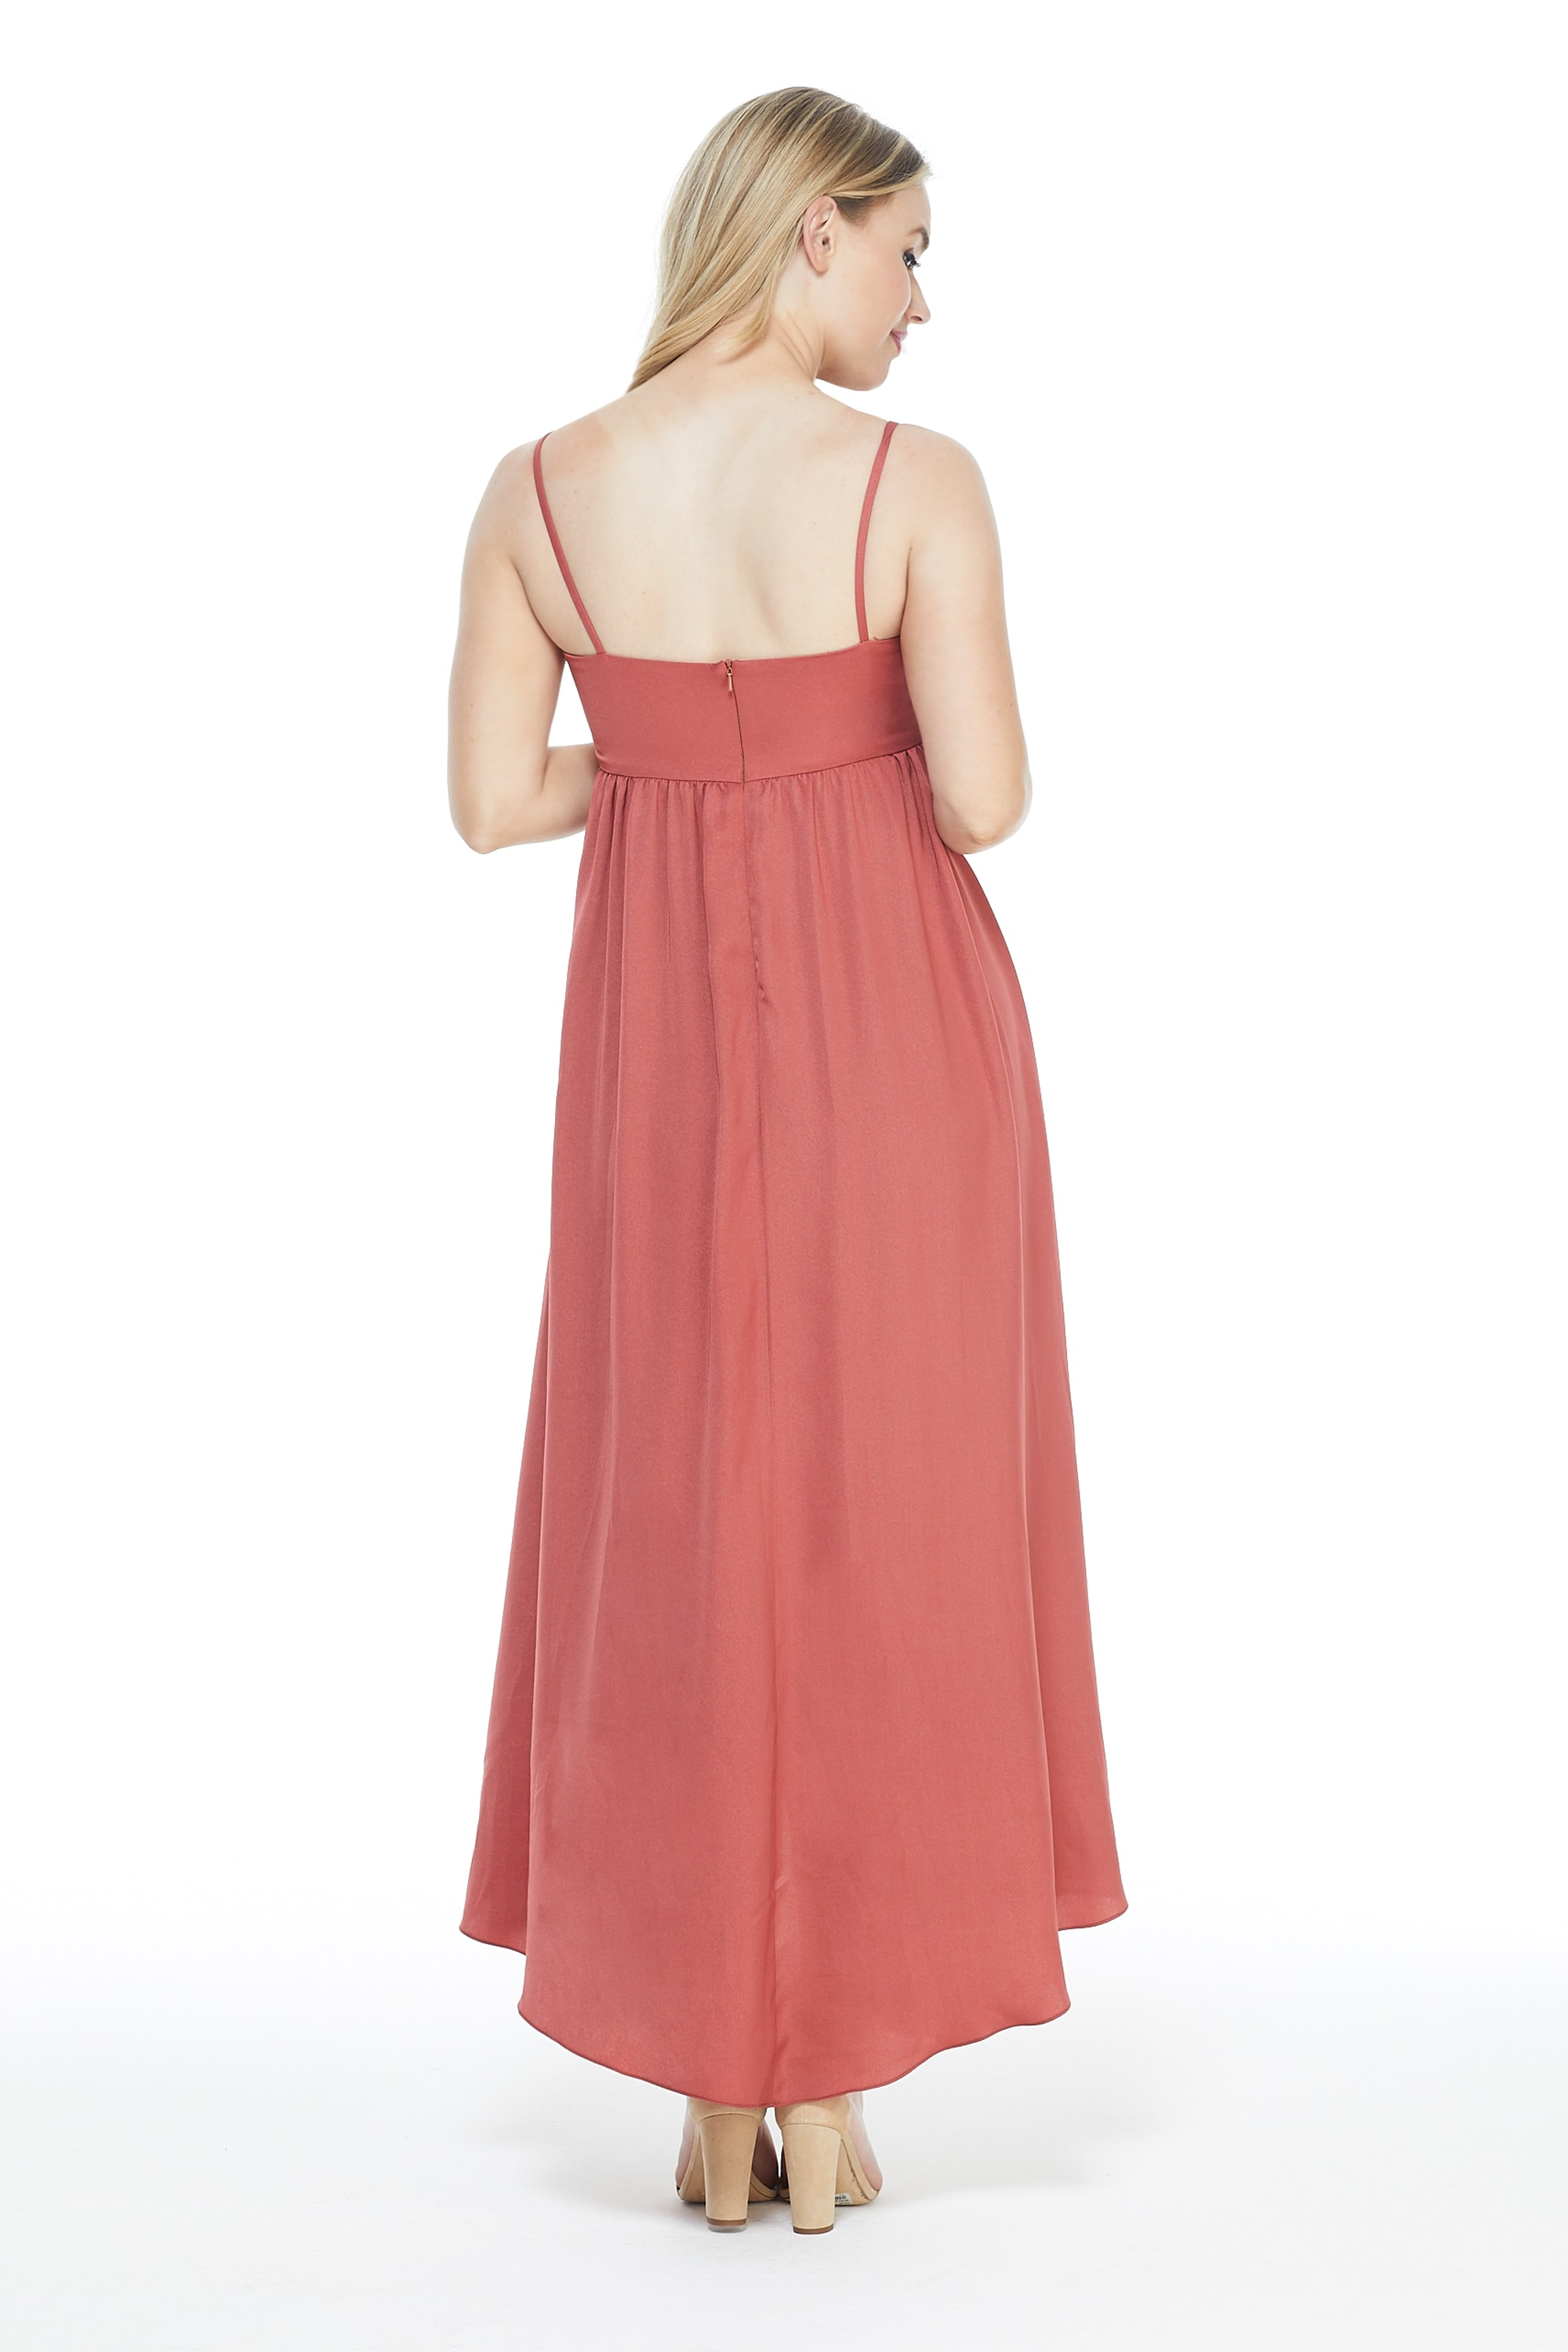 Knot Tie Midi Dress - Rust - Back